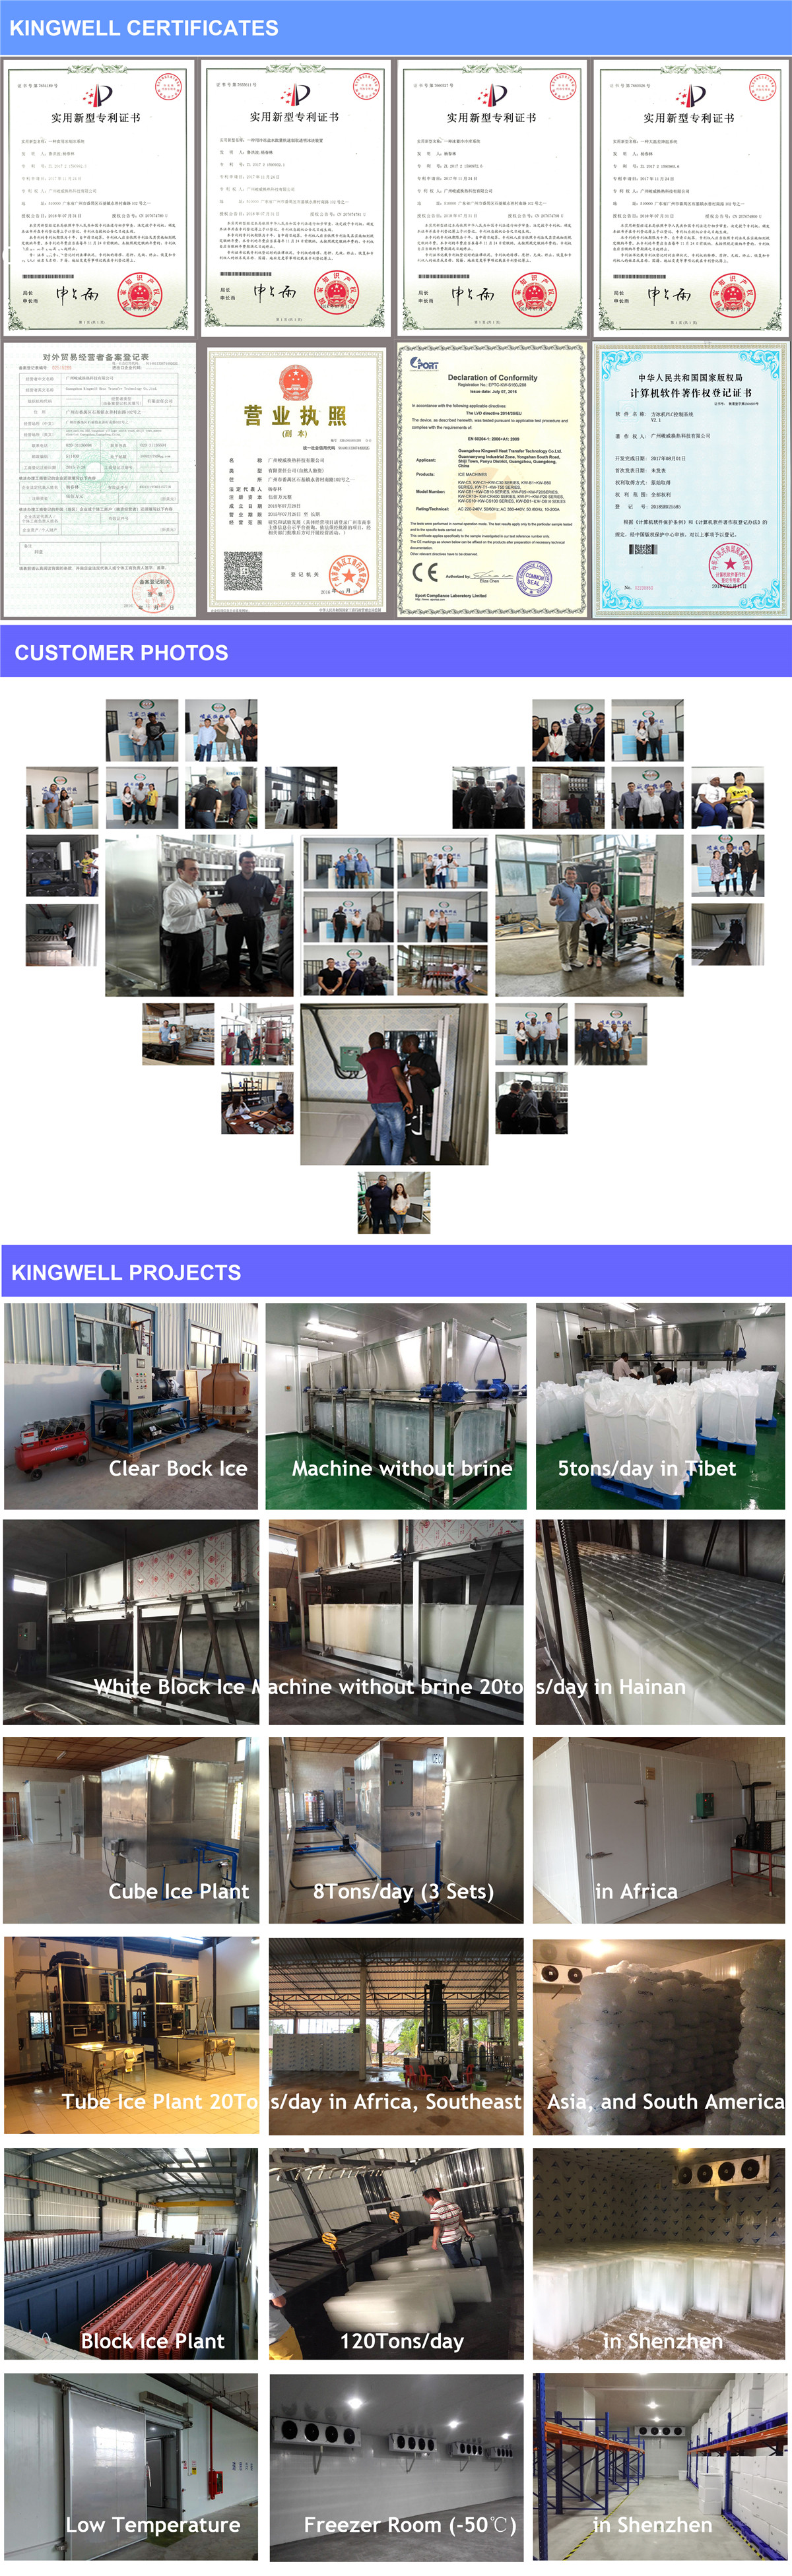 KINGWELL CERTIFICATES+CUSTOMER+PROJECTS 3.jpg